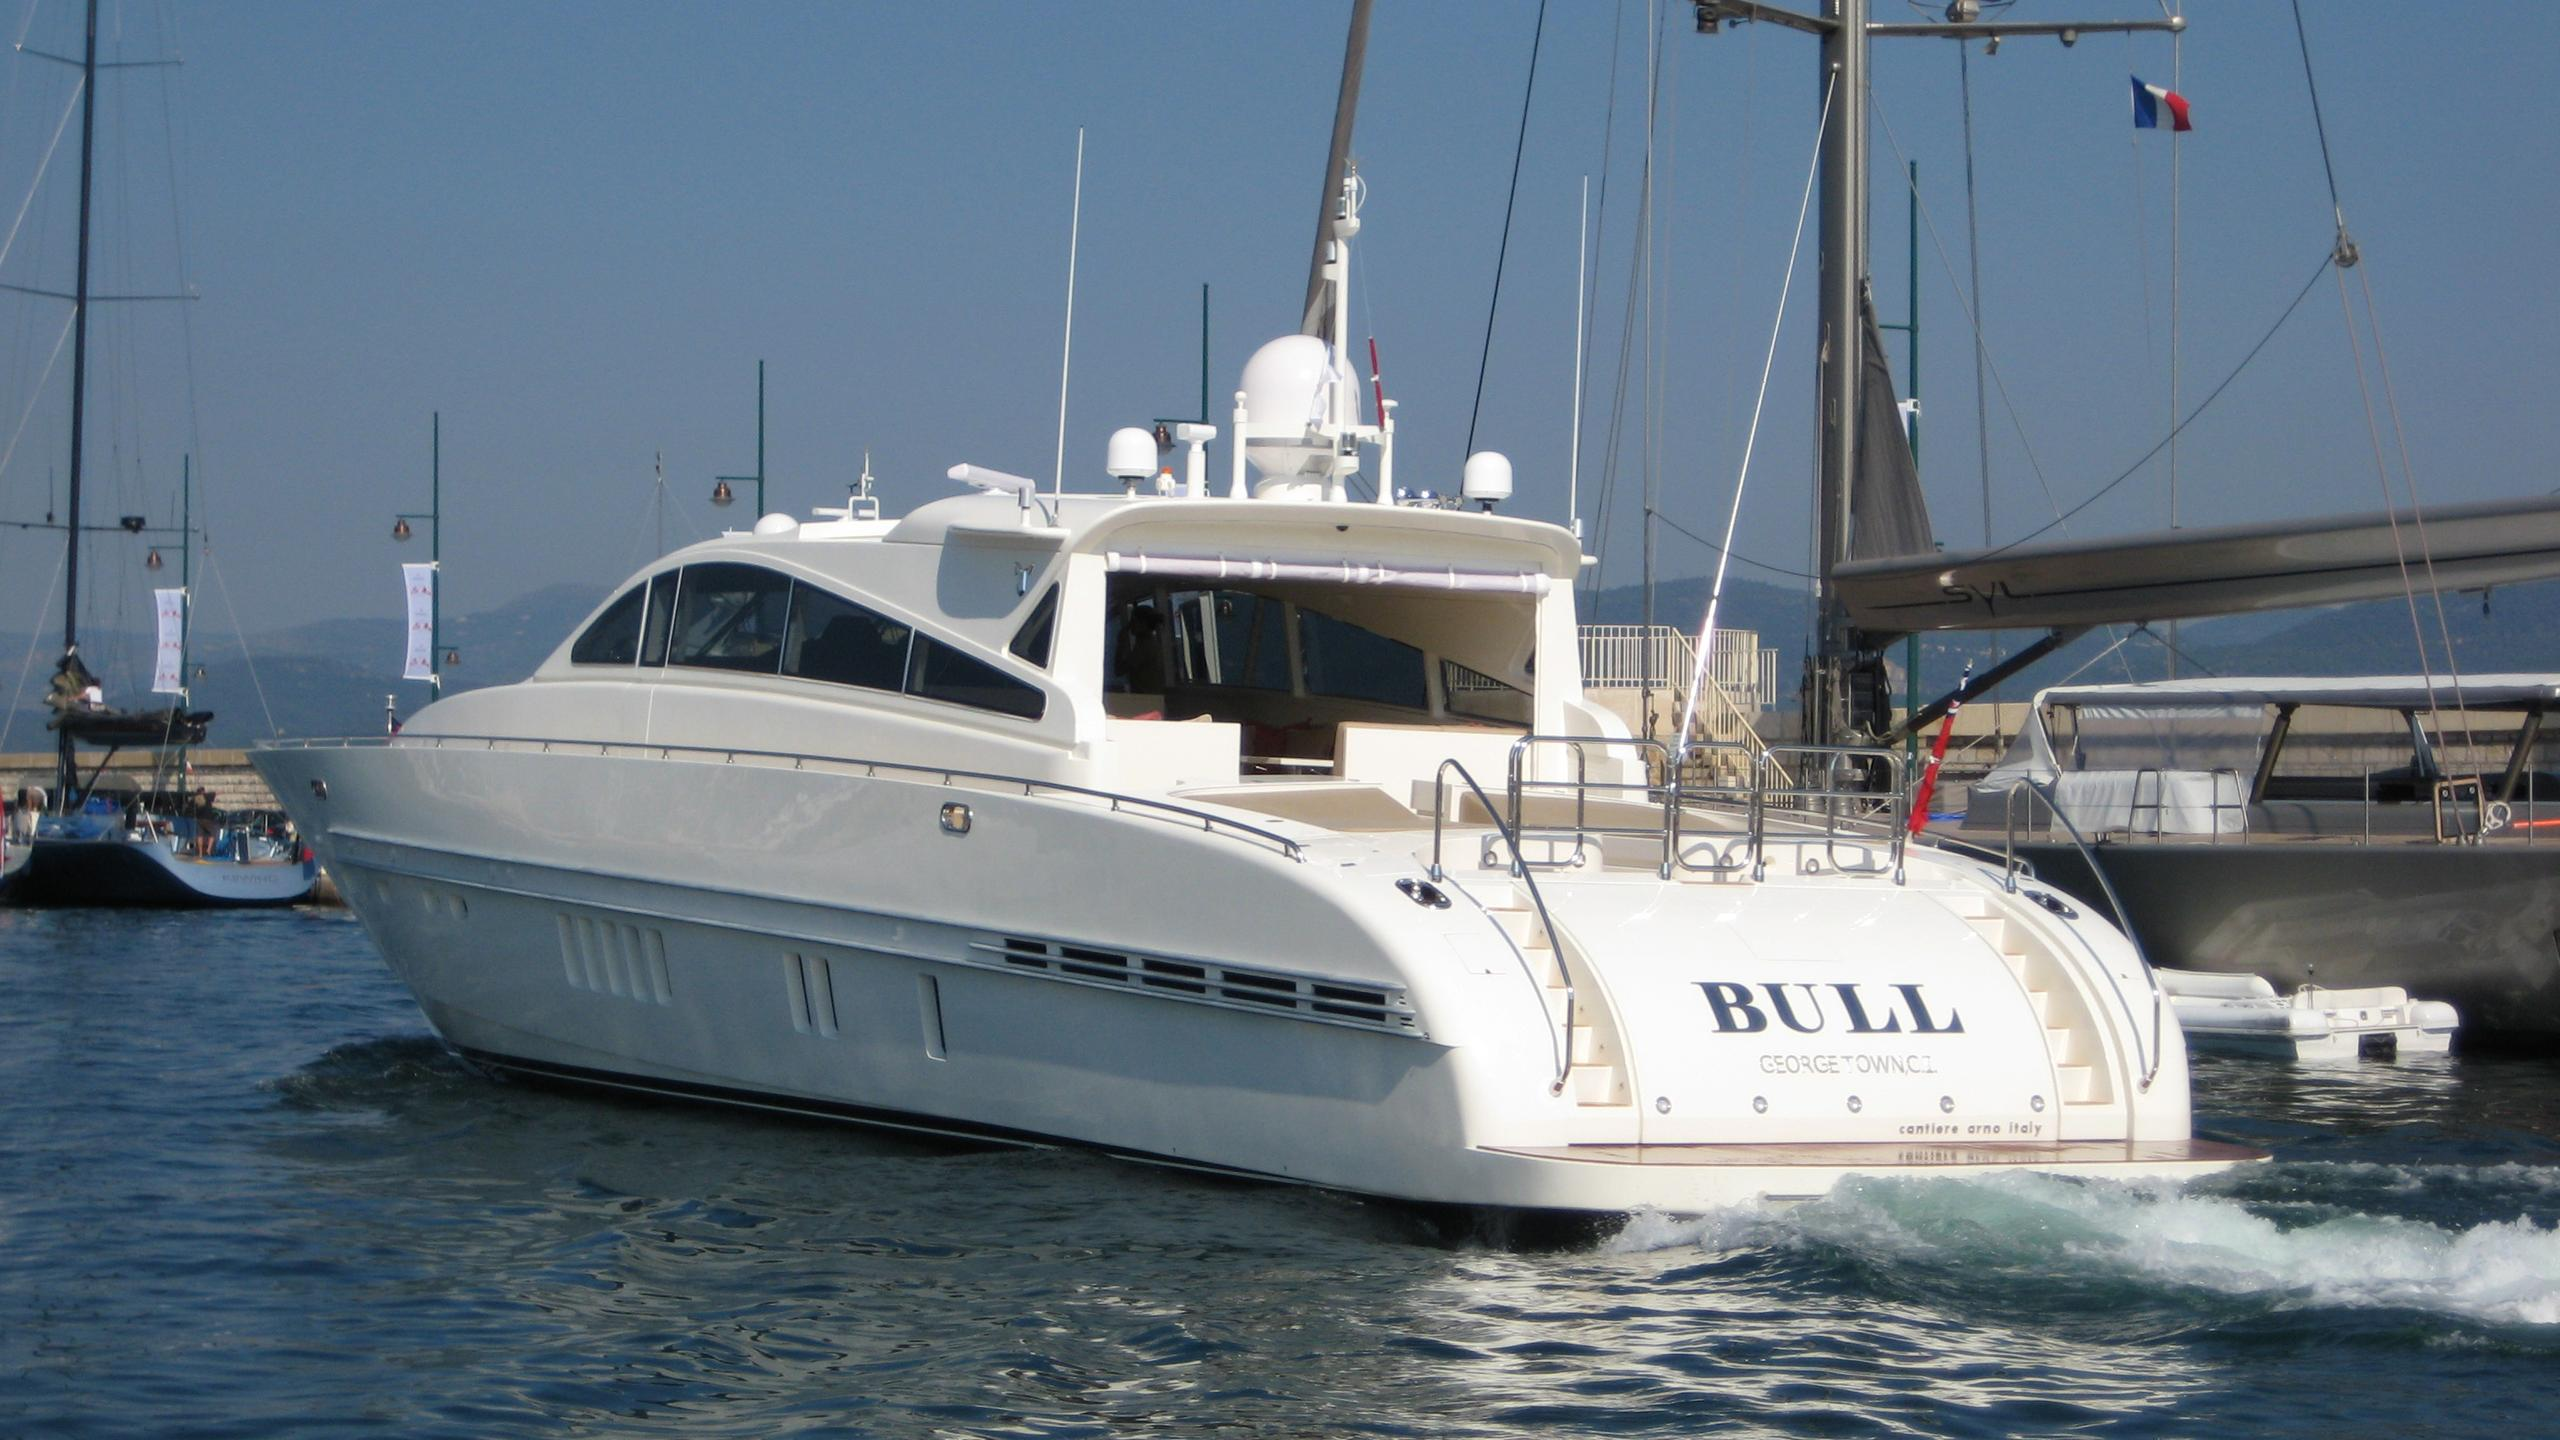 bull-yacht-for-sale-profile